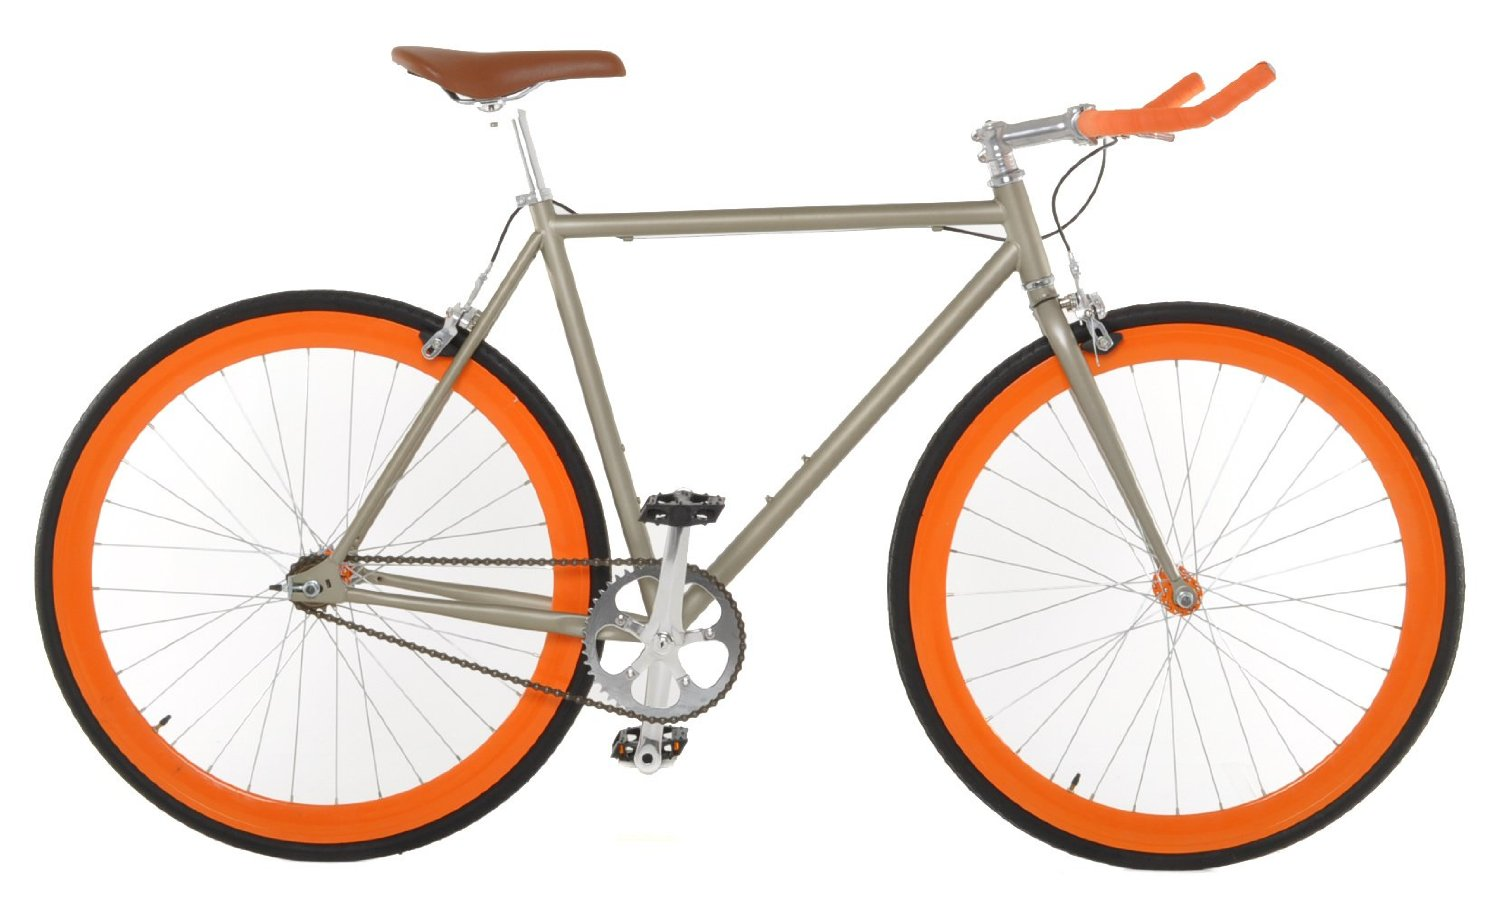 Vilano Edge Fixed Gear Single Speed Bike Review of 2018 -